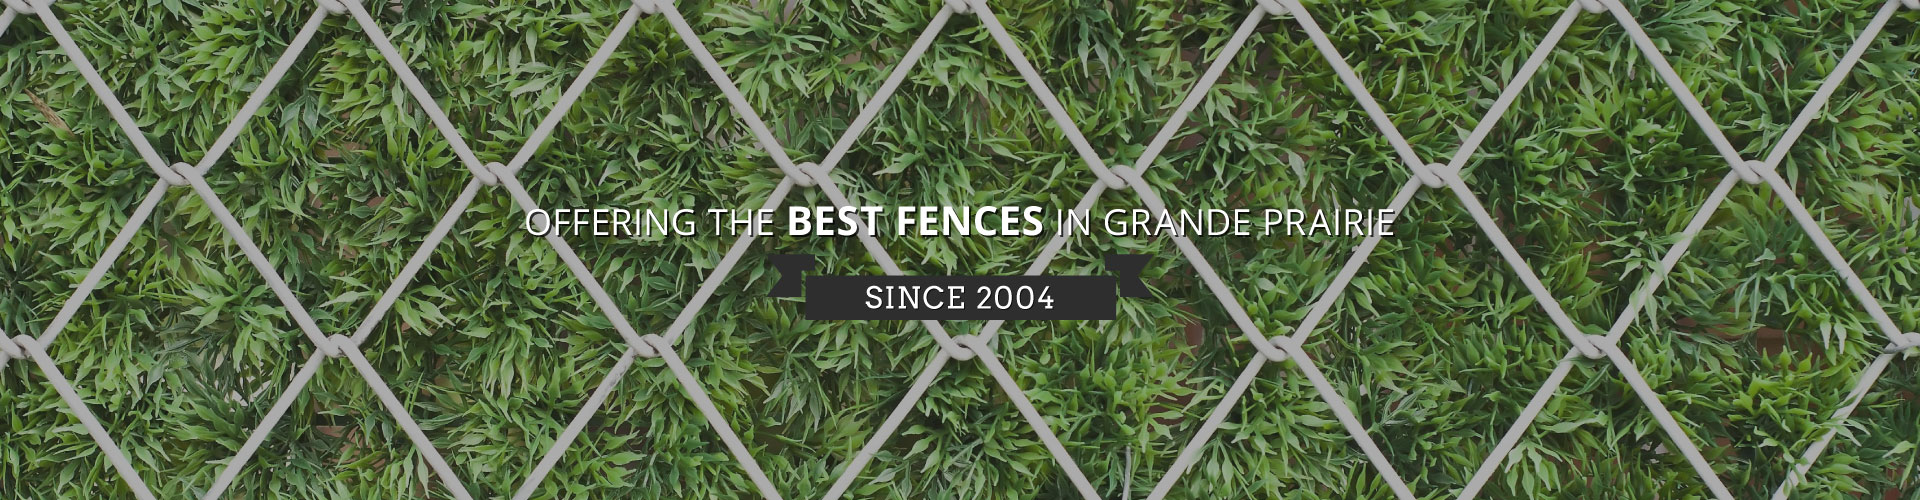 Offering the Best Fences in Grande Prairie Since 2004 | Fence